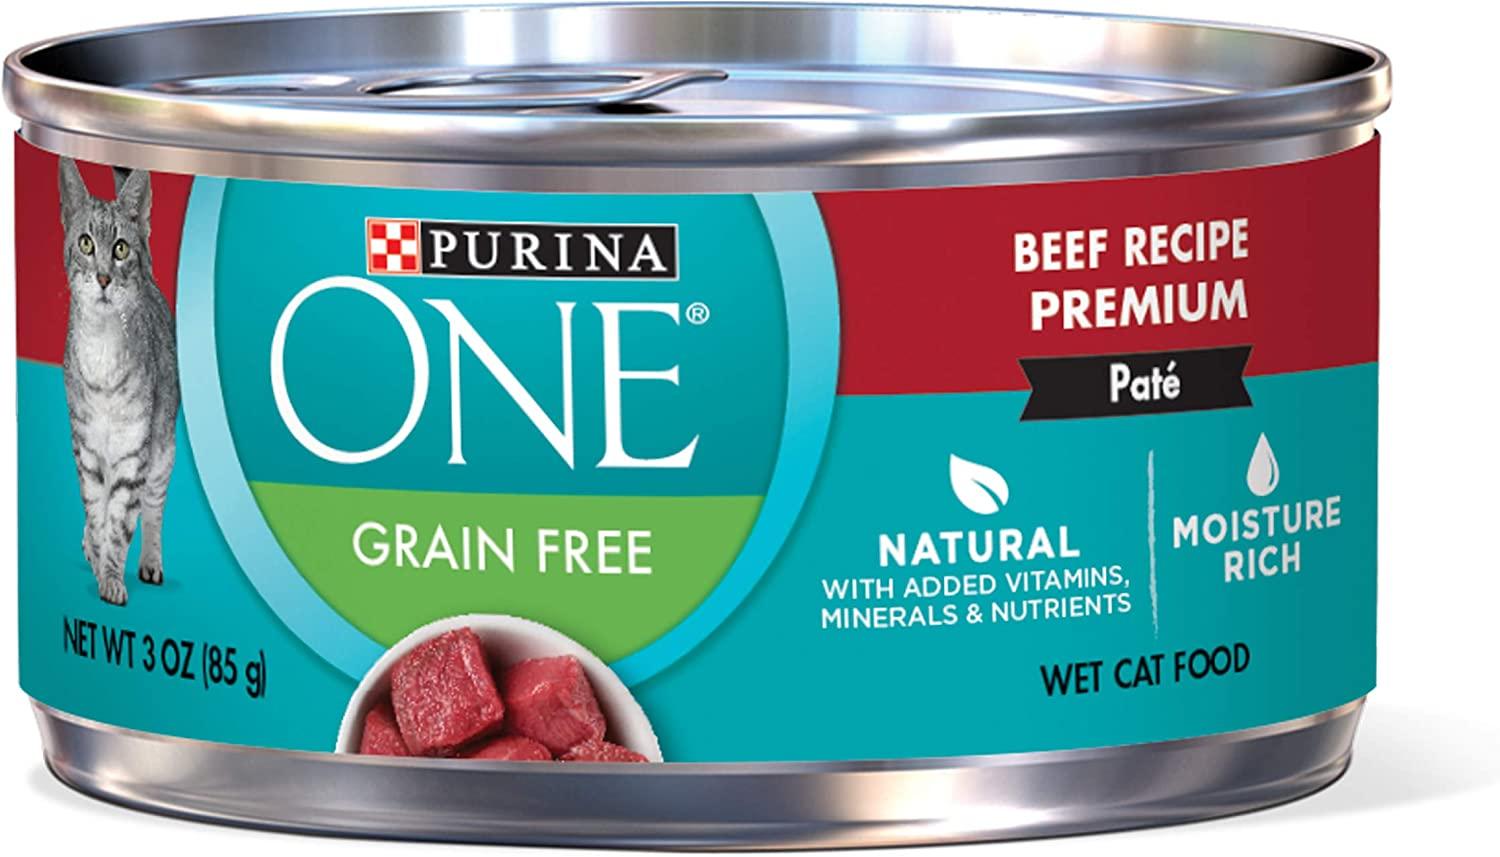 Purina ONE Natural, High Protein, Grain Free Pate Wet Cat Food, Beef Recipe - (24) 3 oz. Pull-Top Cans